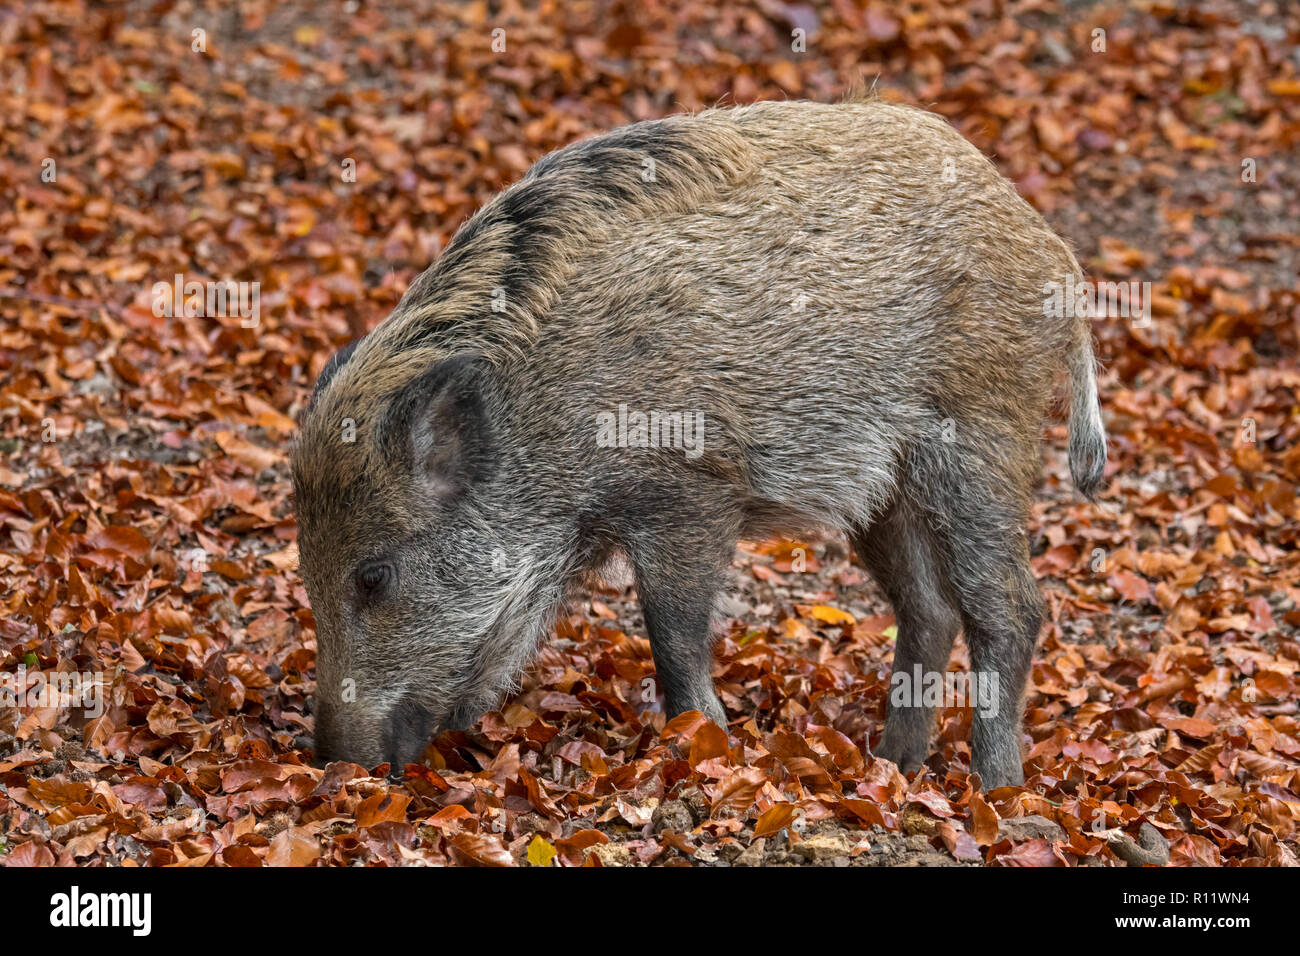 Wild boar (Sus scrofa) piglet foraging in autumn forest by digging with snout in leaf litter in search for beech nuts in the Ardennes - Stock Image